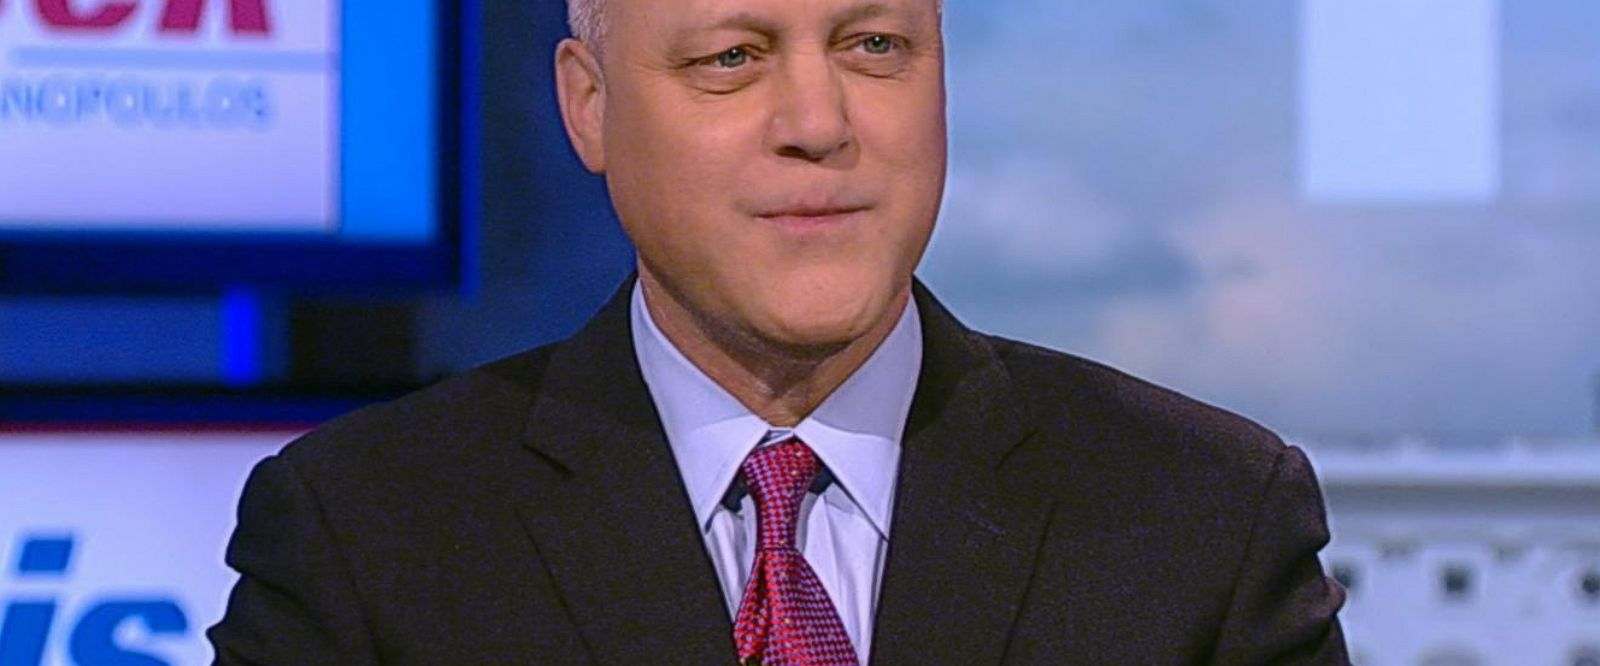 VIDEO: New Orleans mayor talks U.S. race relations and the removal of confederate statues